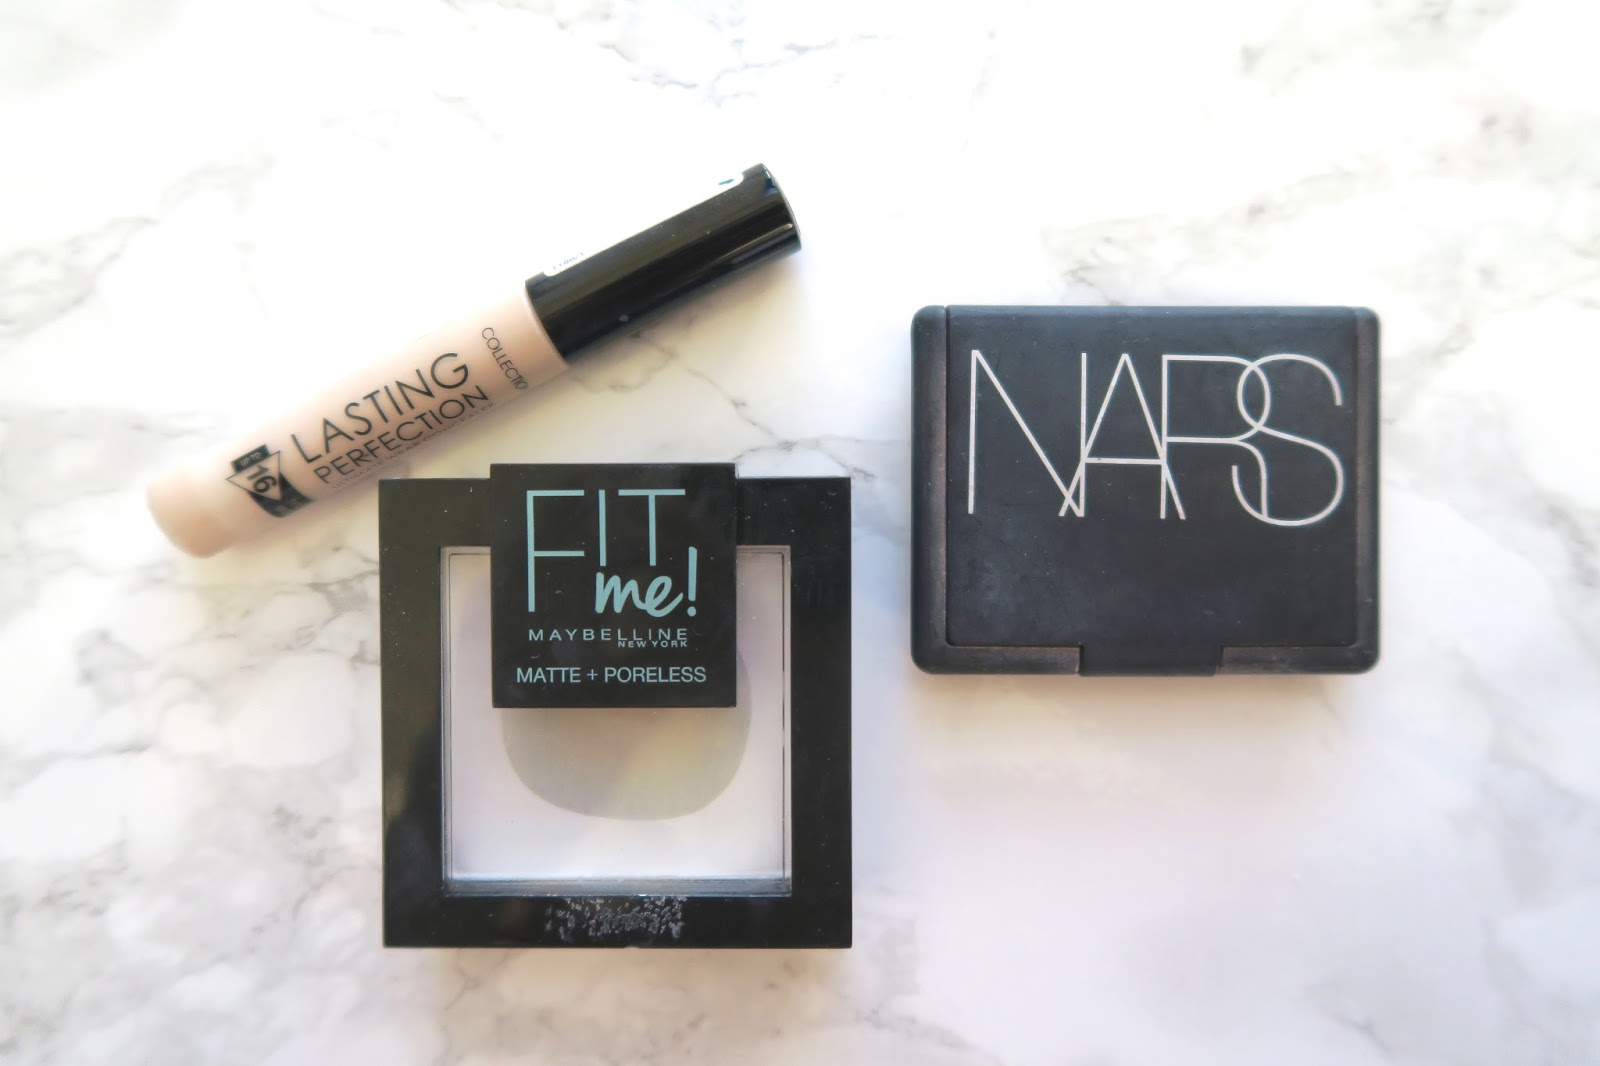 Collection Lasting Perfection concealer, Maybelline Fit Me Matt and Poreless powder and Nars blush in the shade Deep Throat